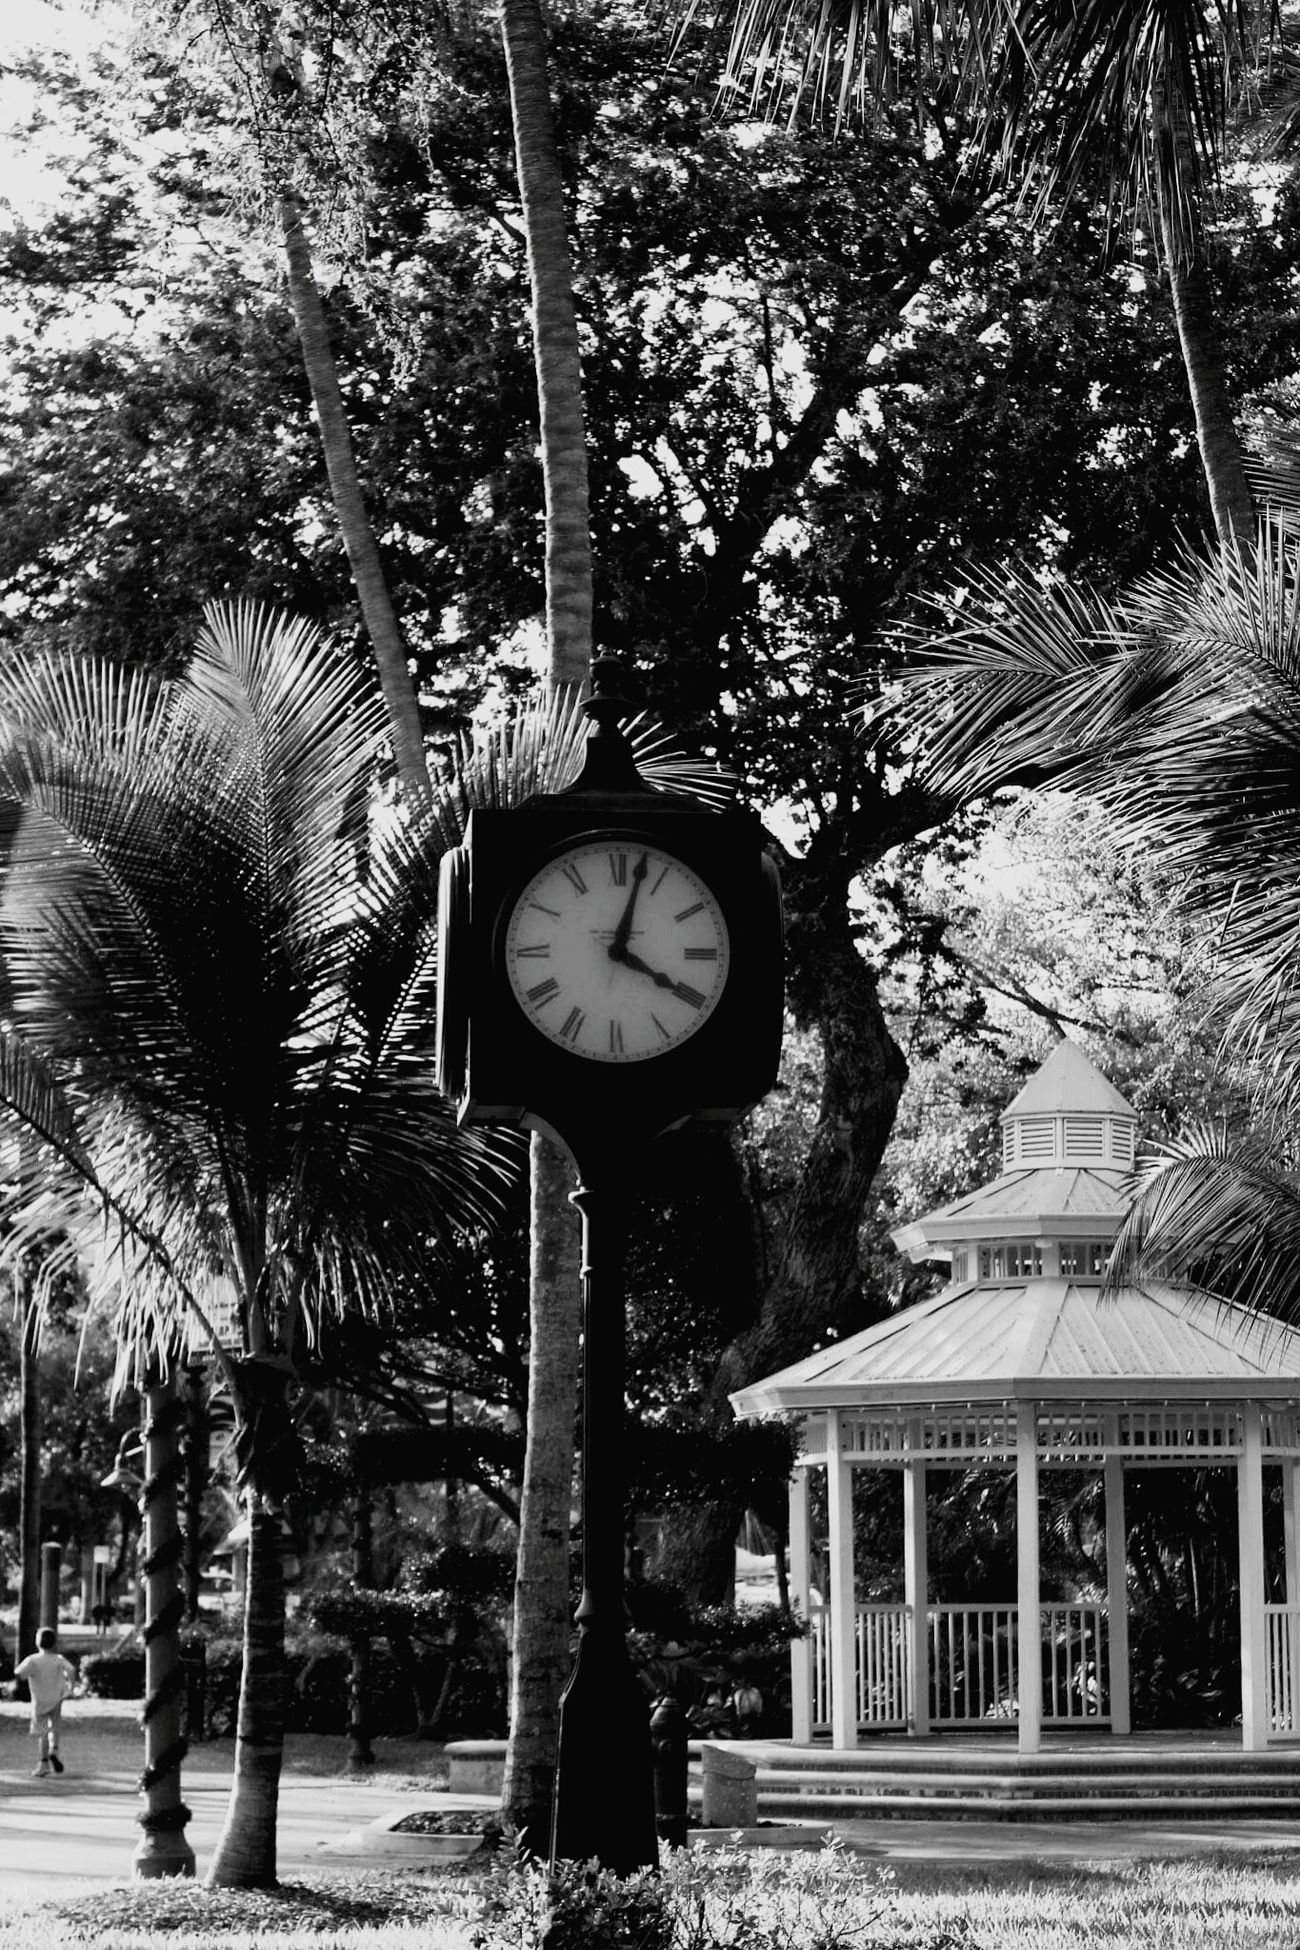 Come out on upon my seas, Cursed missed opportunities, Am I a part of the cure, Or am I part of the disease, Singing... City Clocks Streetphoto_bw Ft Lauderdale